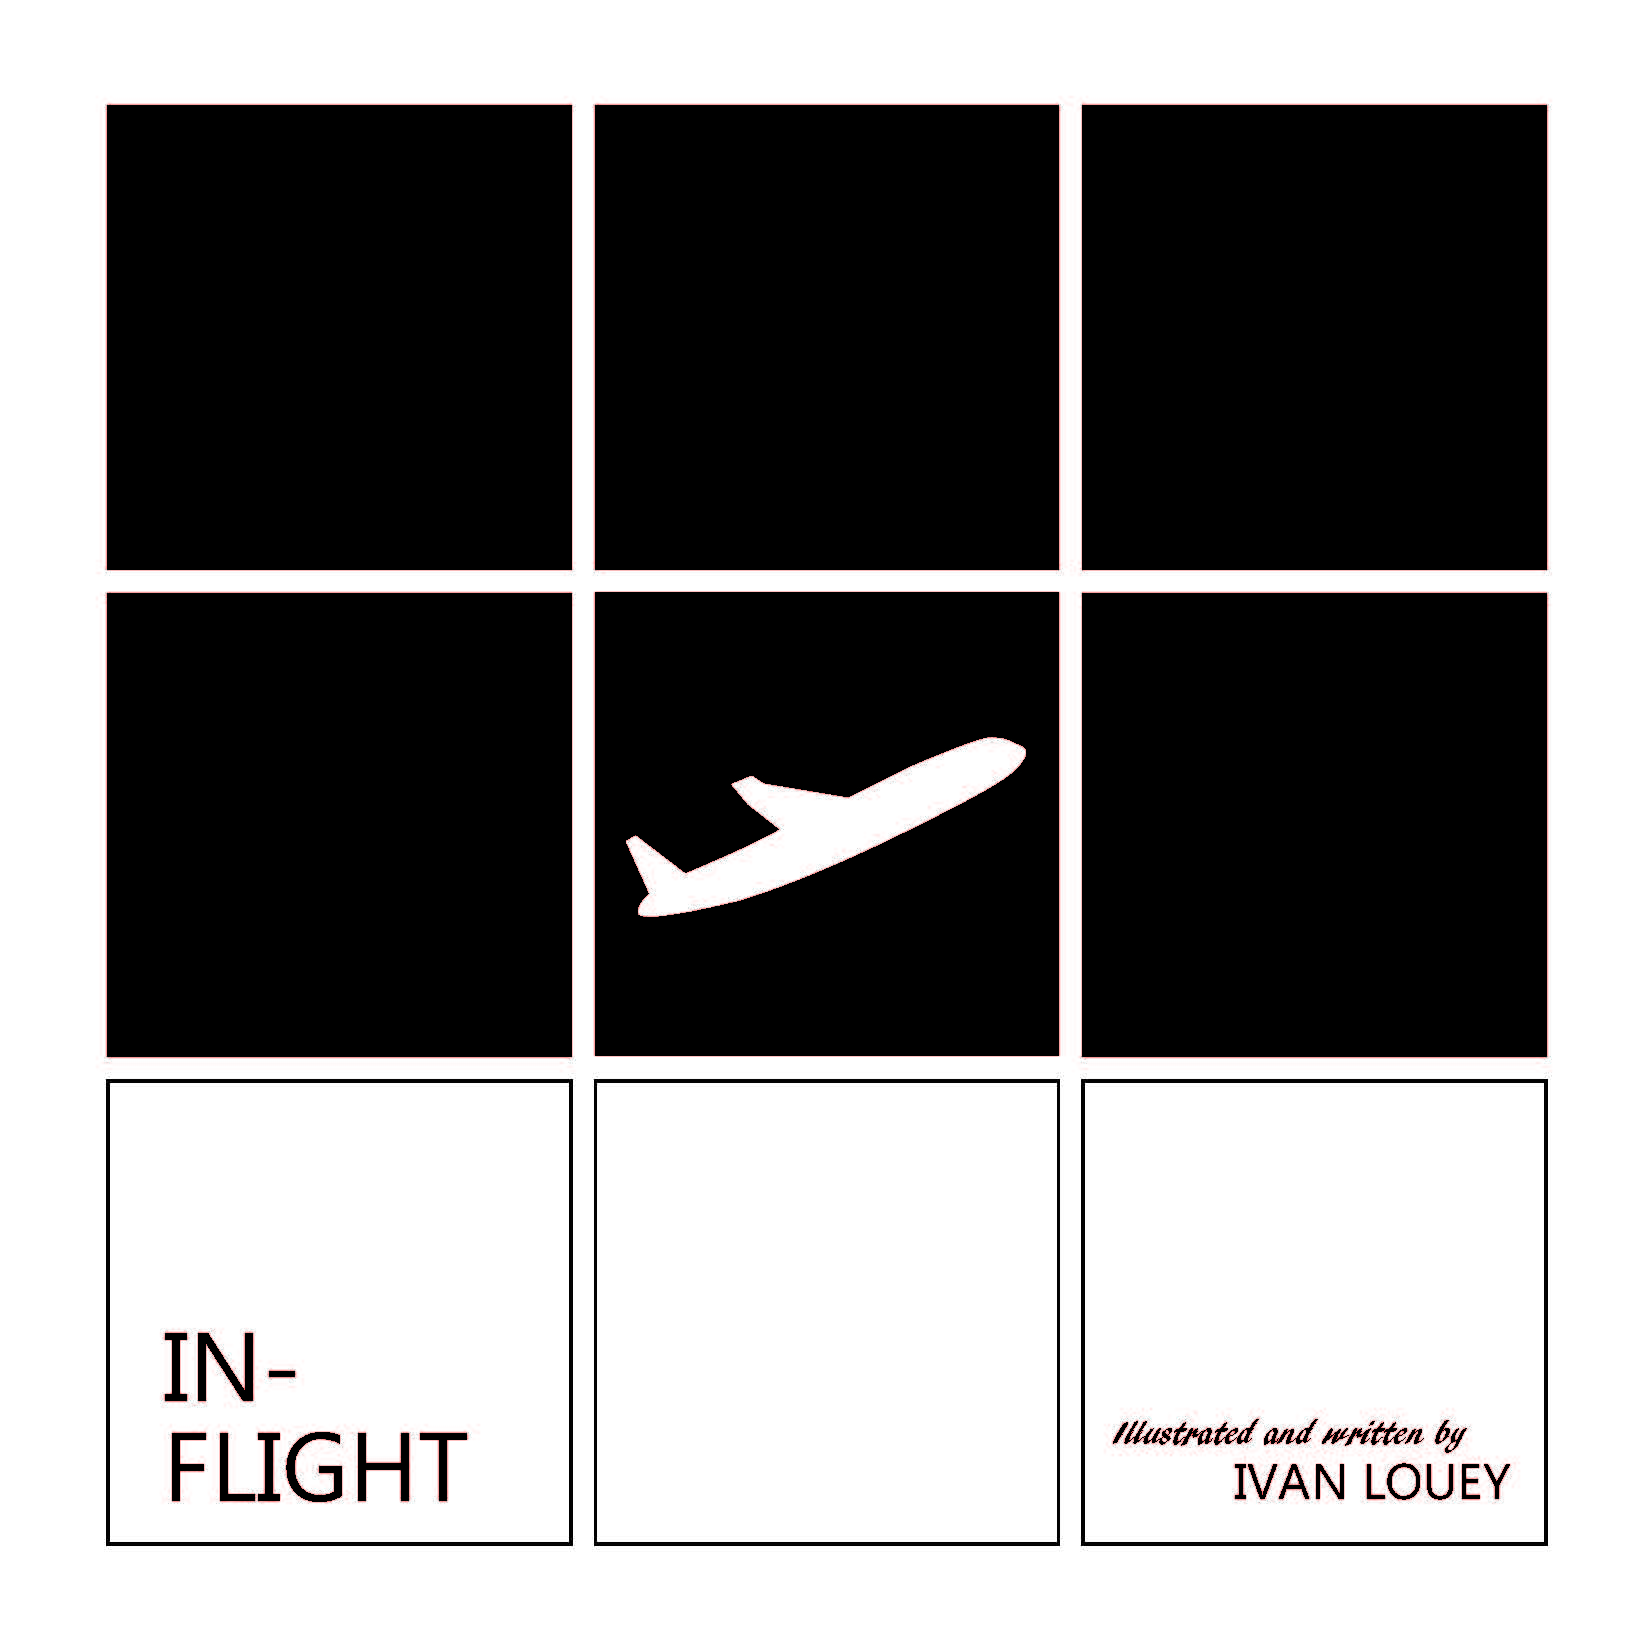 In-Flight - Ivan Louey - Page_1.jpg